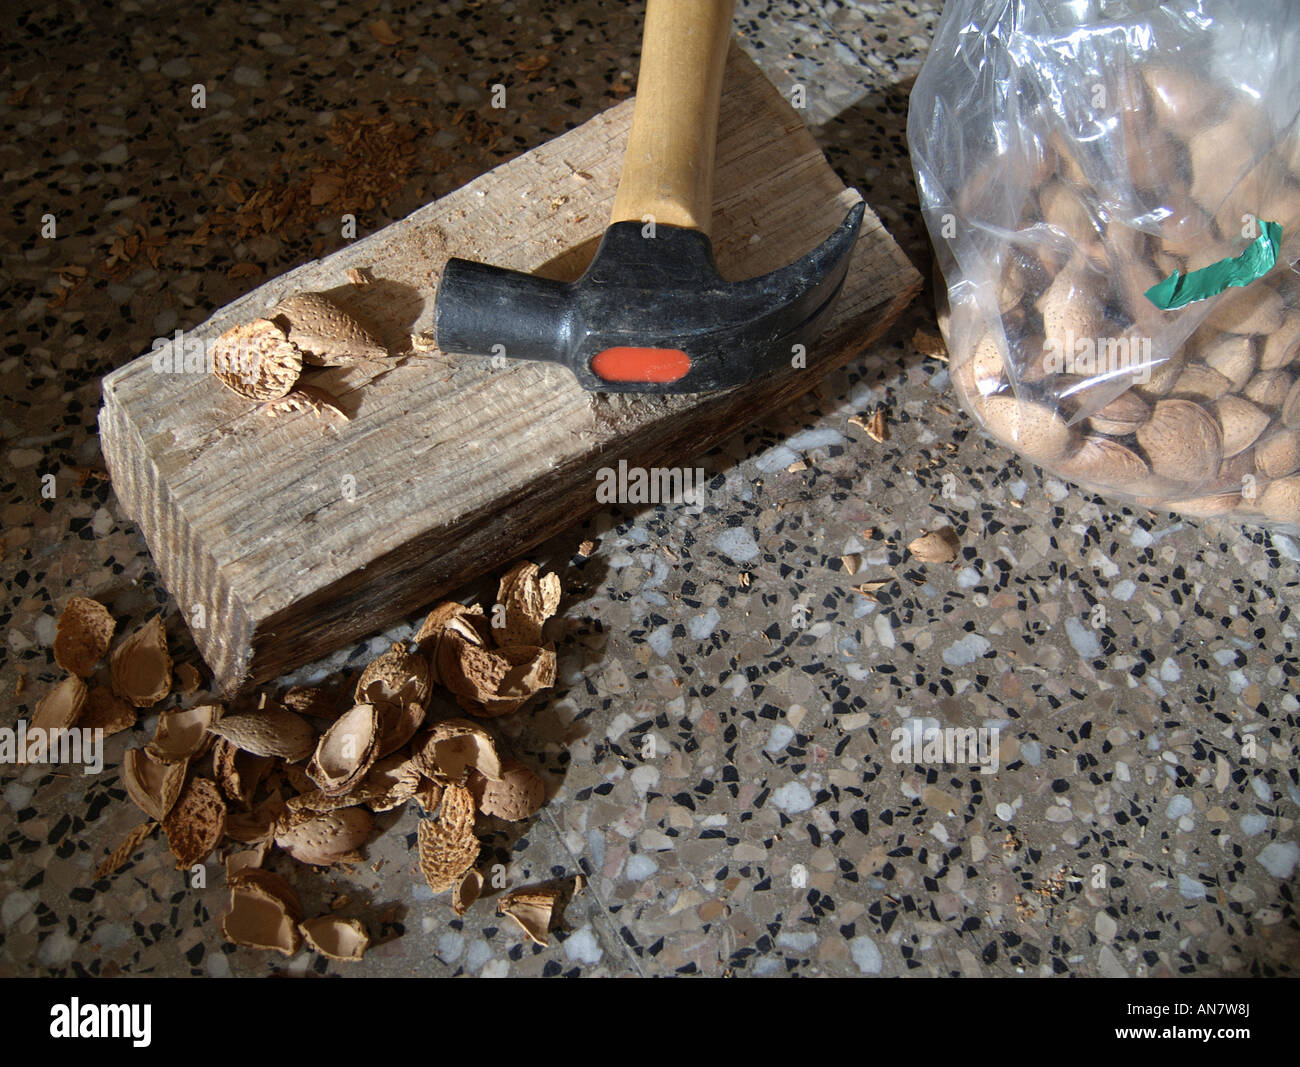 Opening almonds with a claw hammer on wooden base. - Stock Image